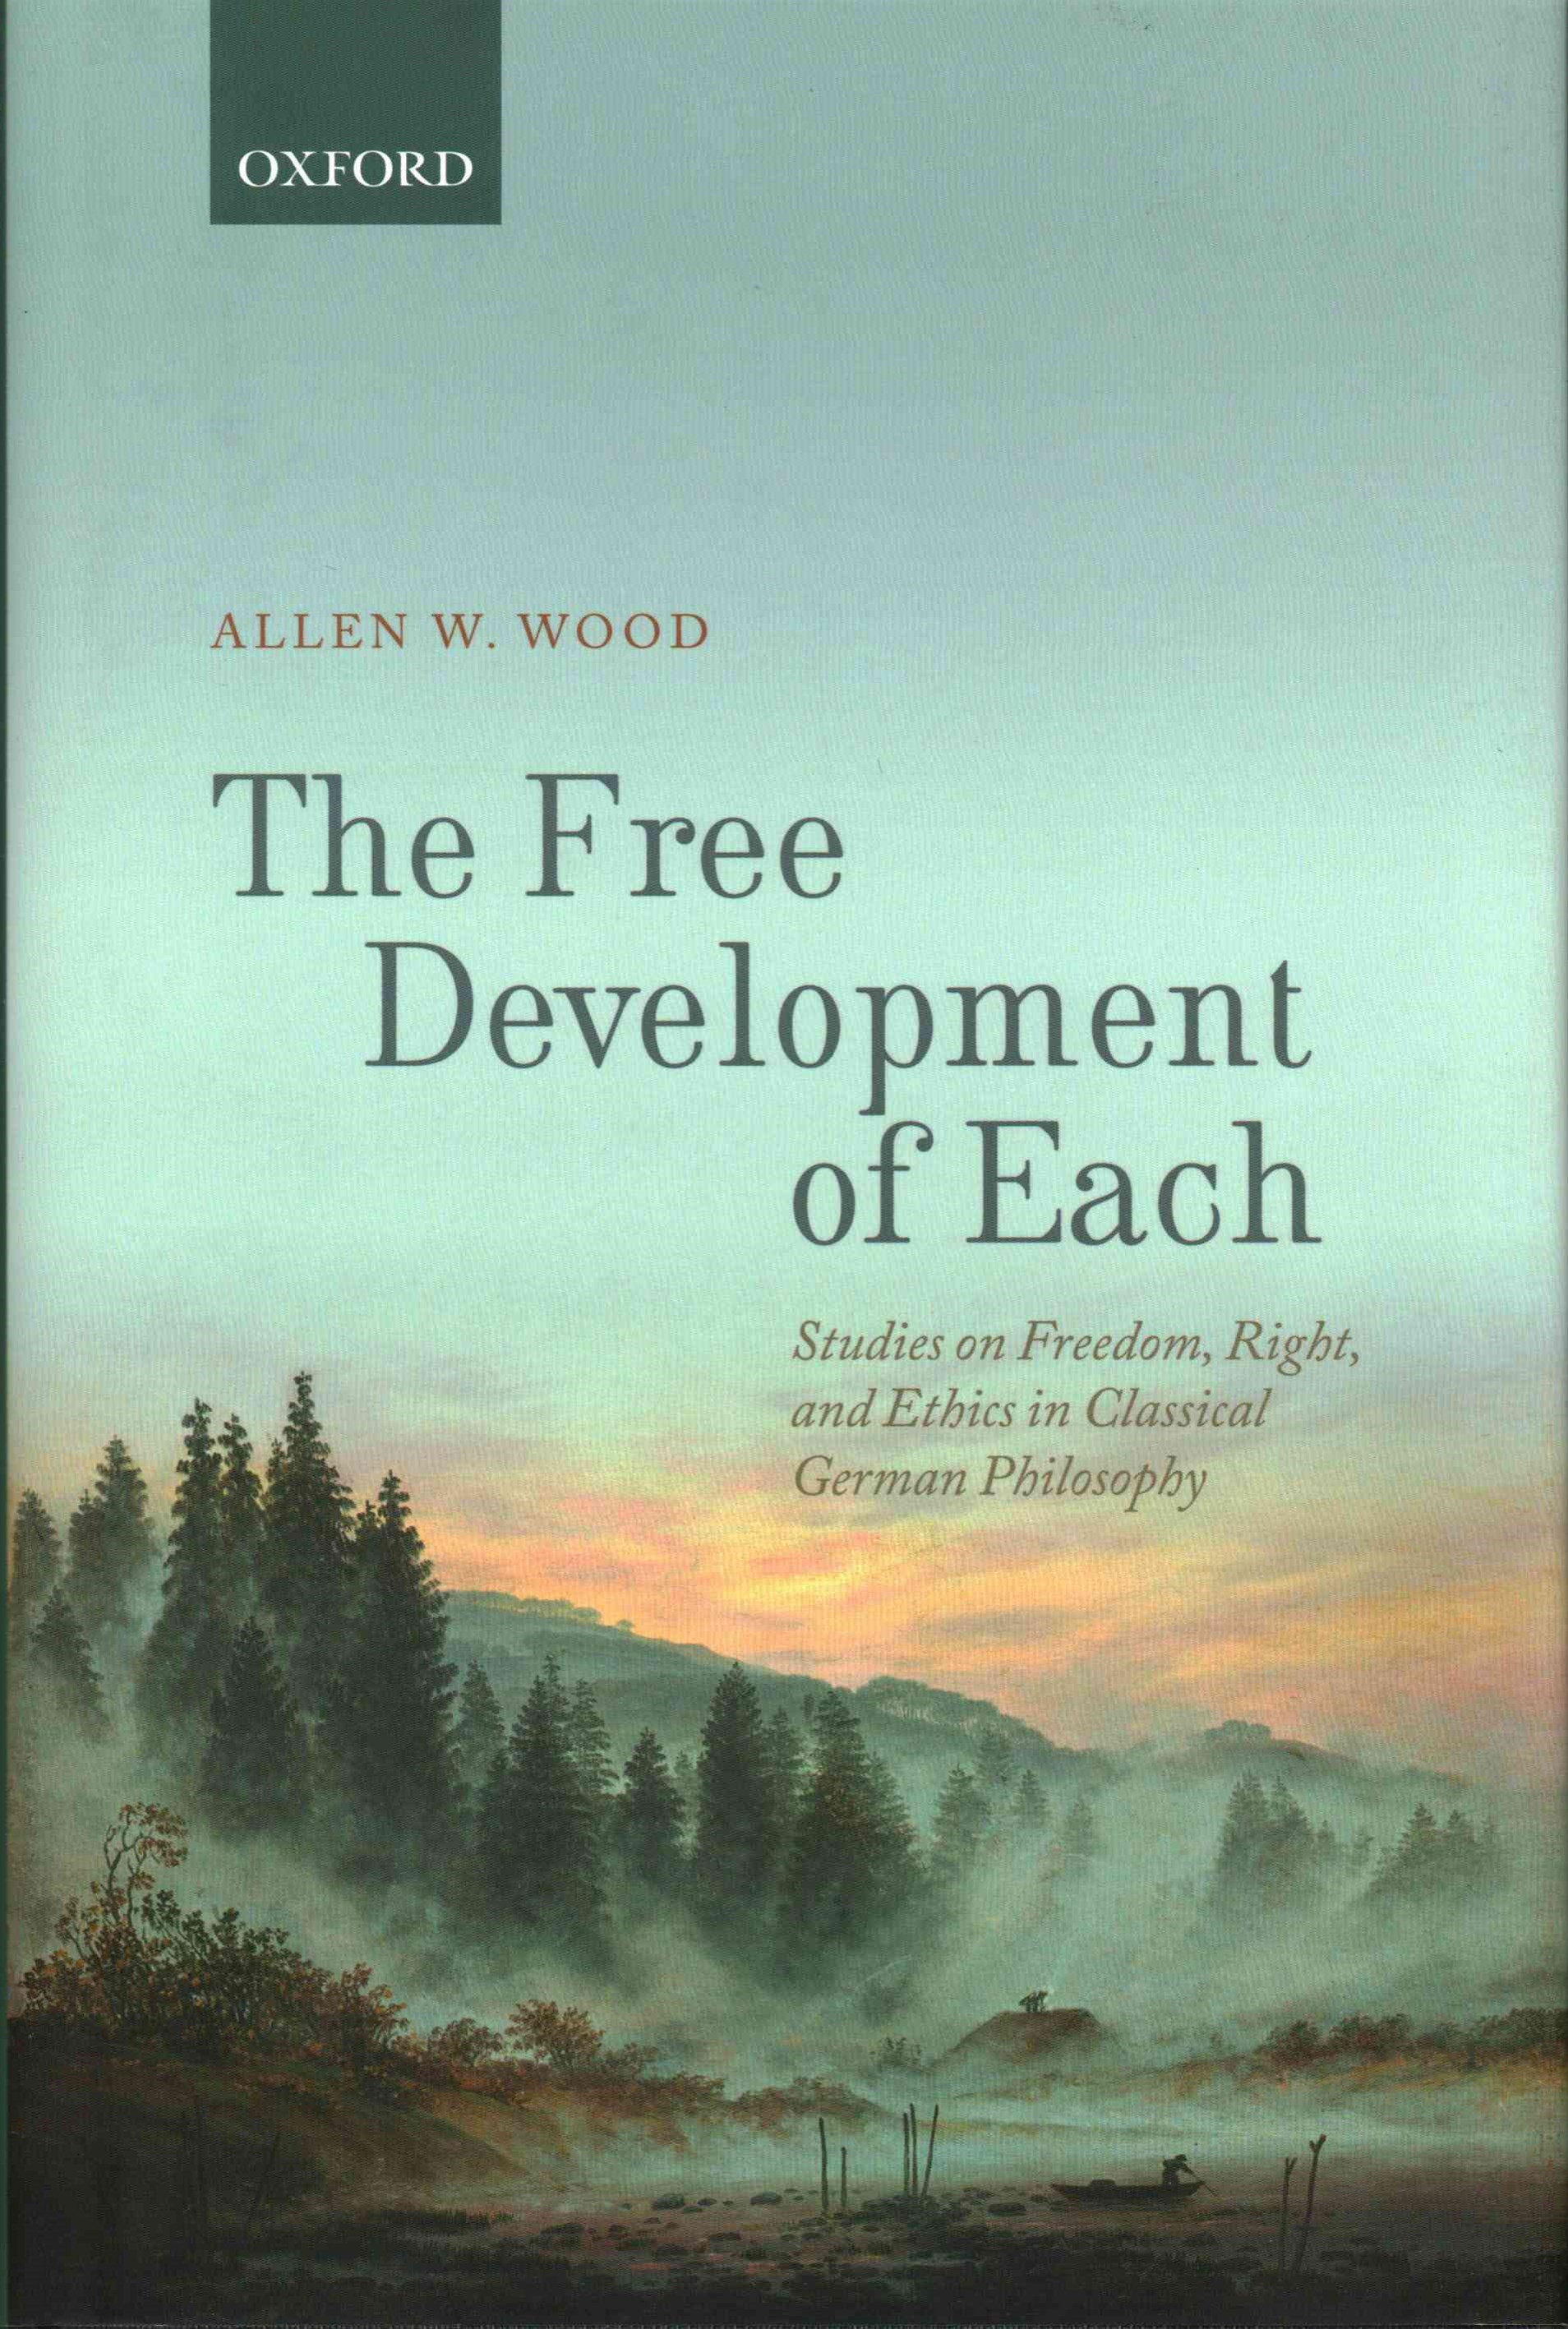 The Free Development of Each